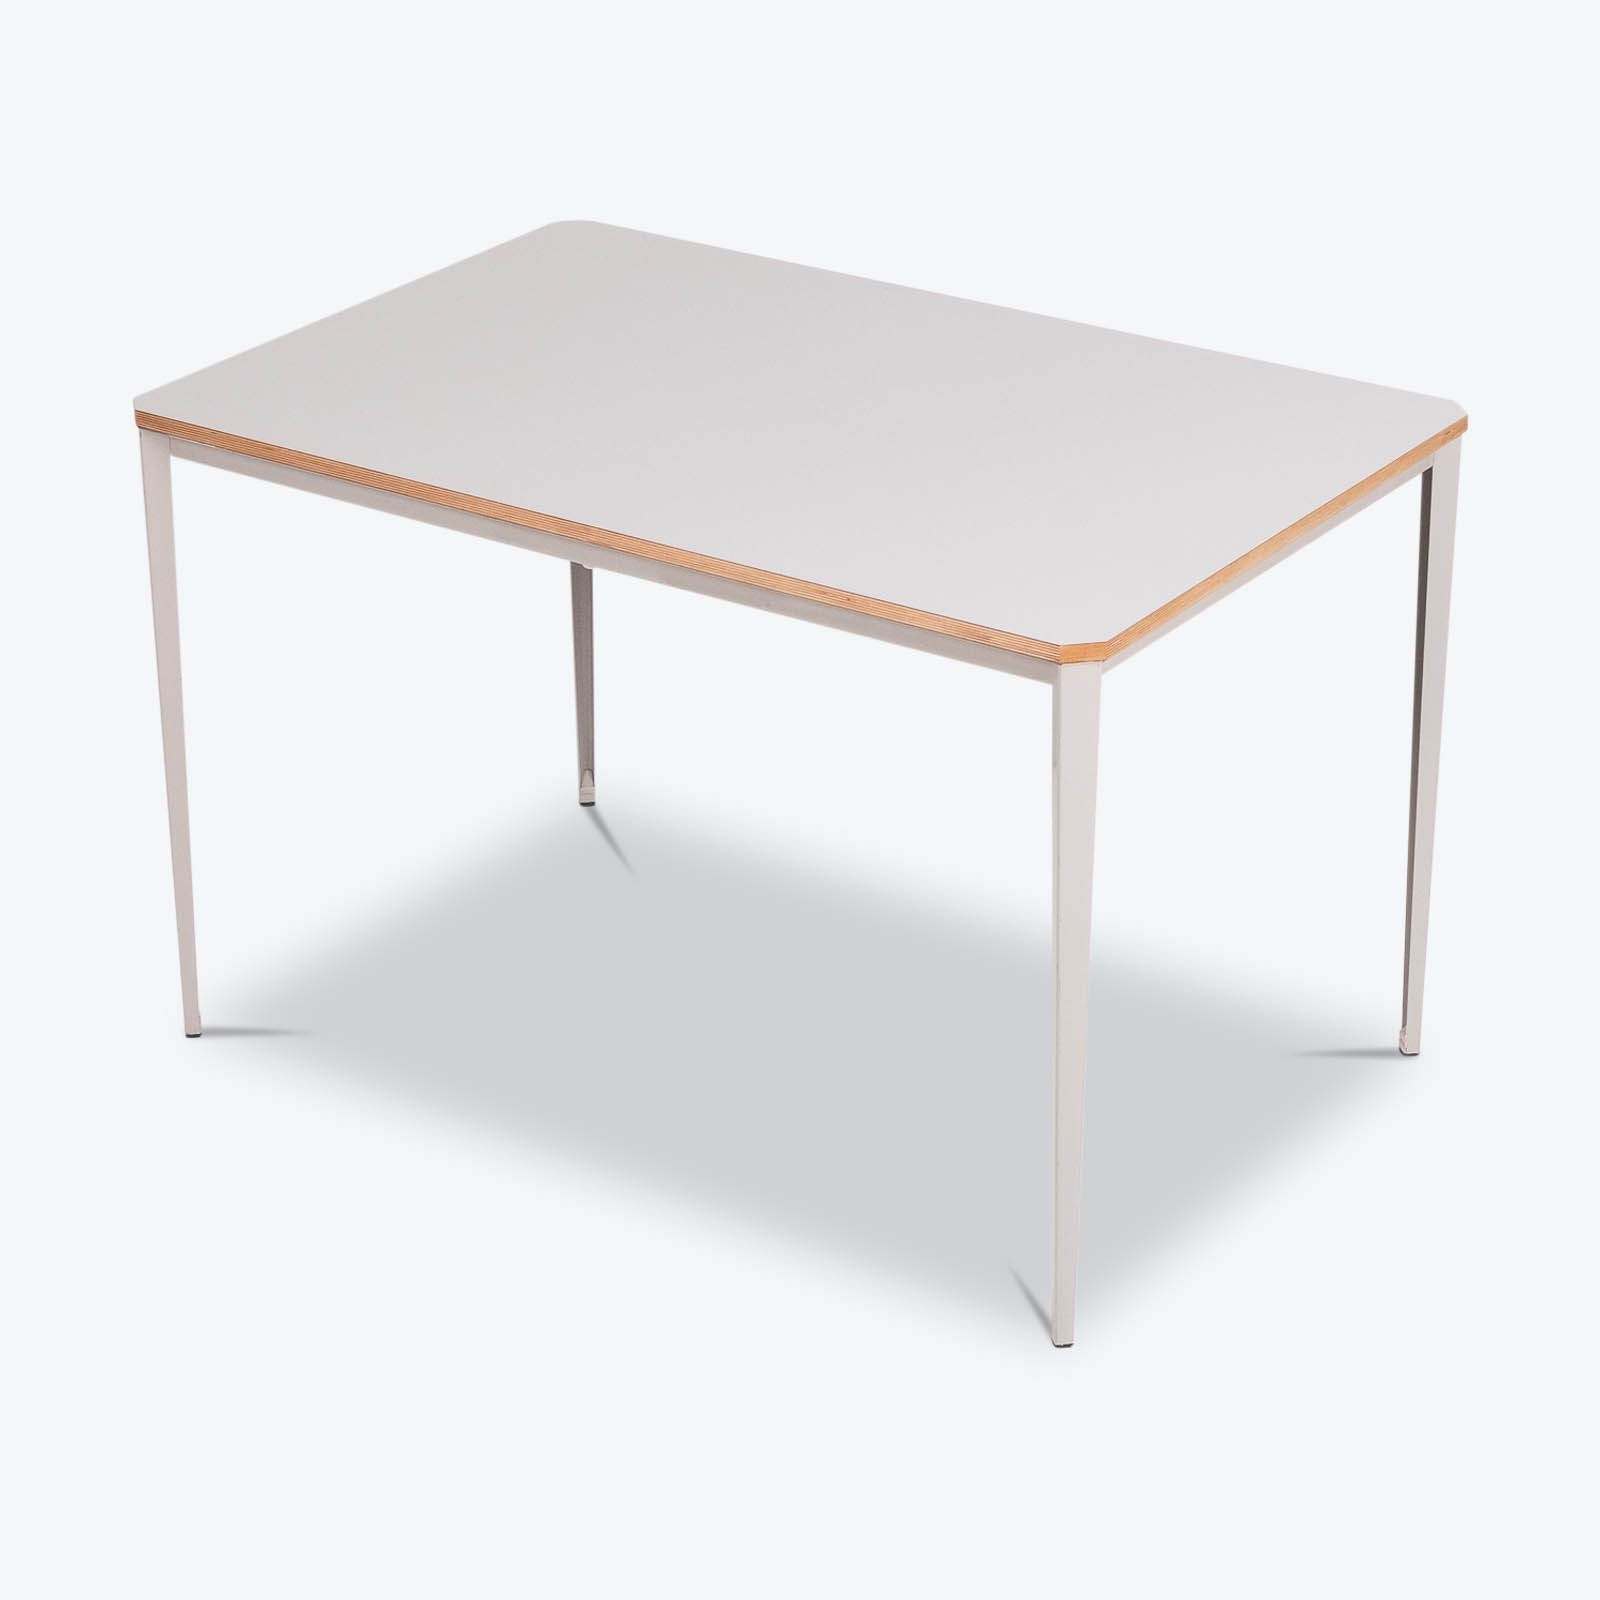 Recent Table By Wim Rietveld For Ahrend De Cirkel With Grey Steel Base, 1960s, The Netherlands Hero